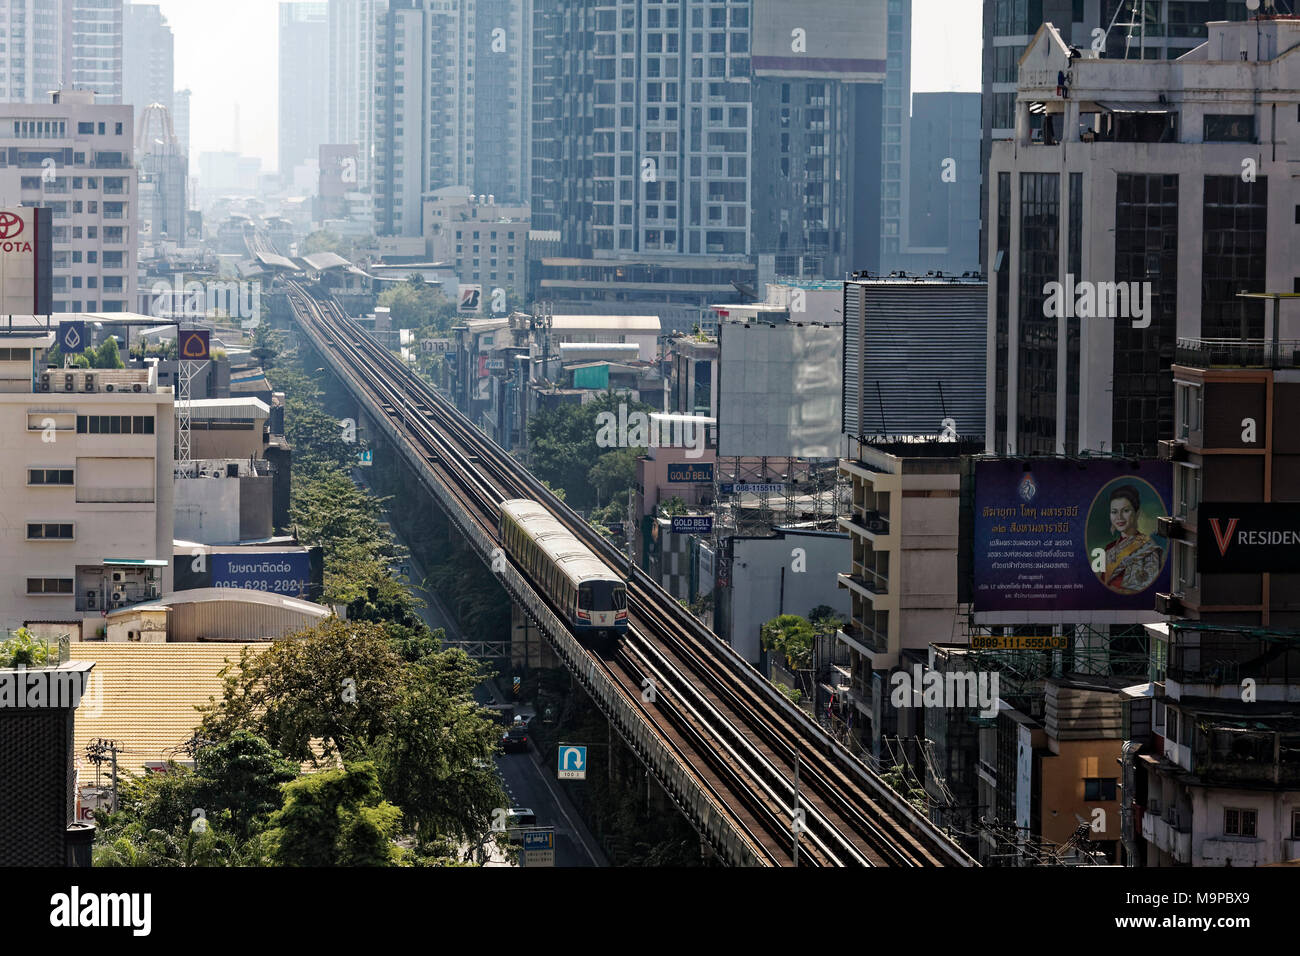 BTS Skytrain route in the Sukhumvit Road with station Phrom Pong, Khlong Toei, Bangkok, Thailand - Stock Image